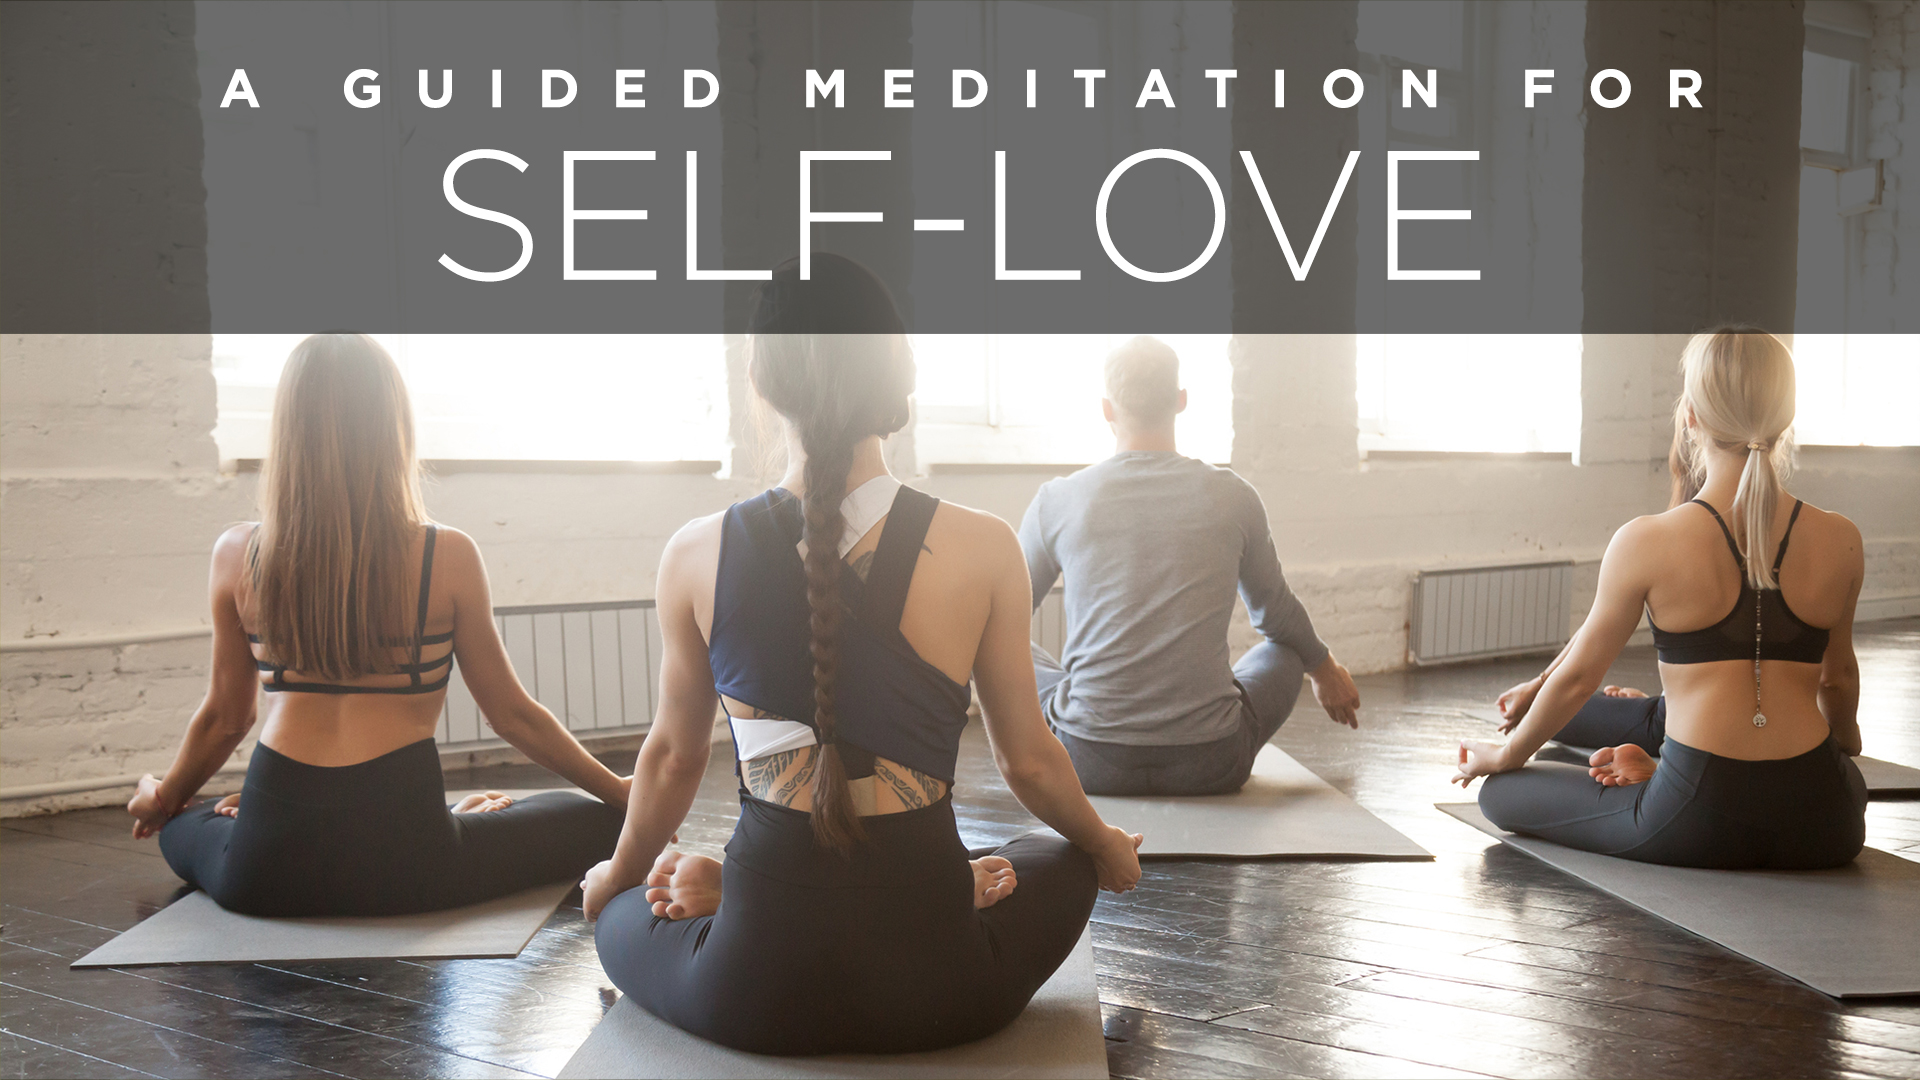 A Guided Meditation for Self-Love | Yoga International